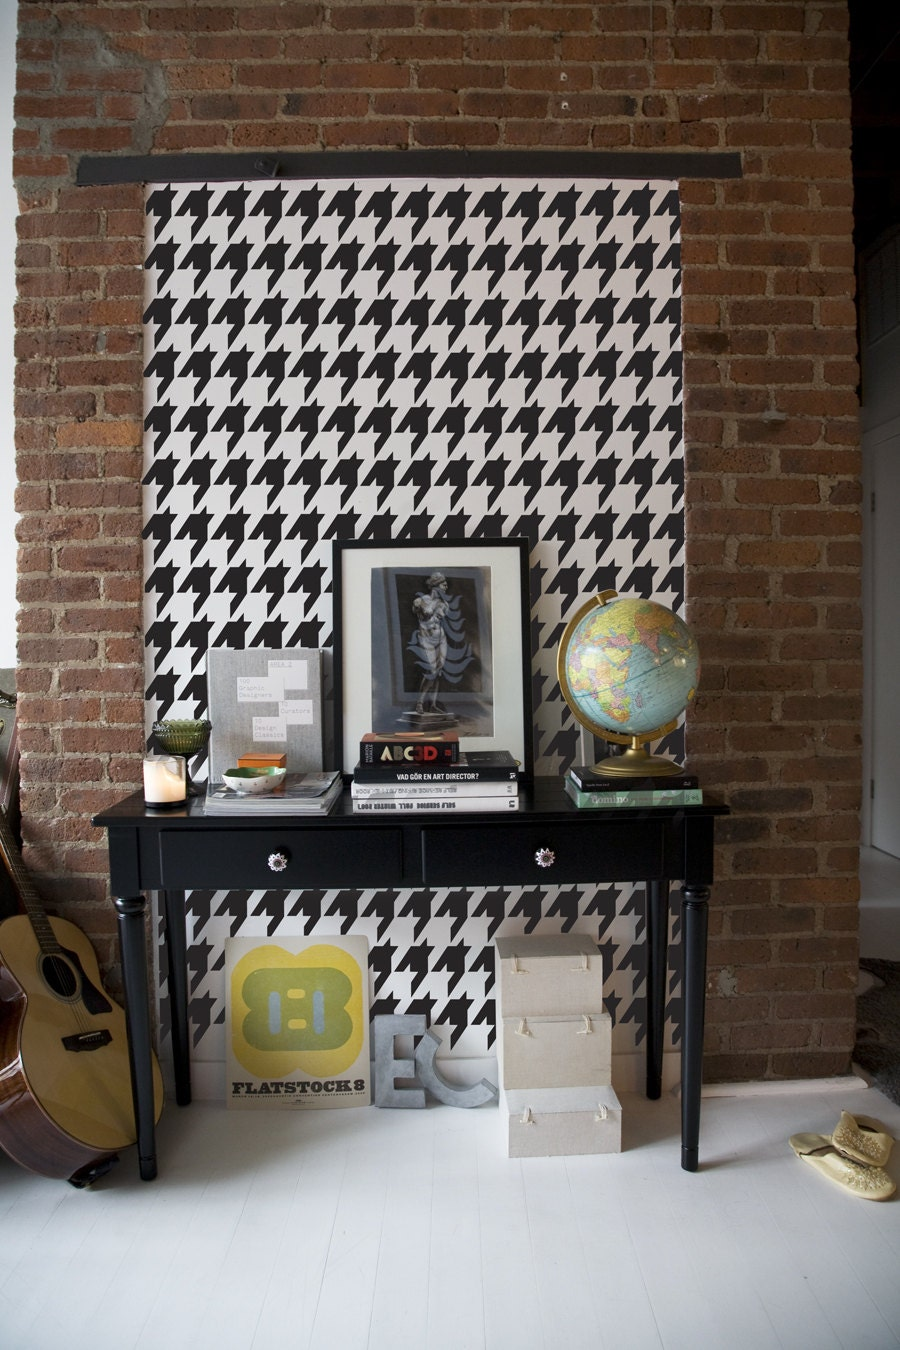 Houndstooth wall stencil gallery home wall decoration ideas houndstooth repeat wall stencil reusable craft diy stencils sold by stencil1 amipublicfo gallery amipublicfo Image collections